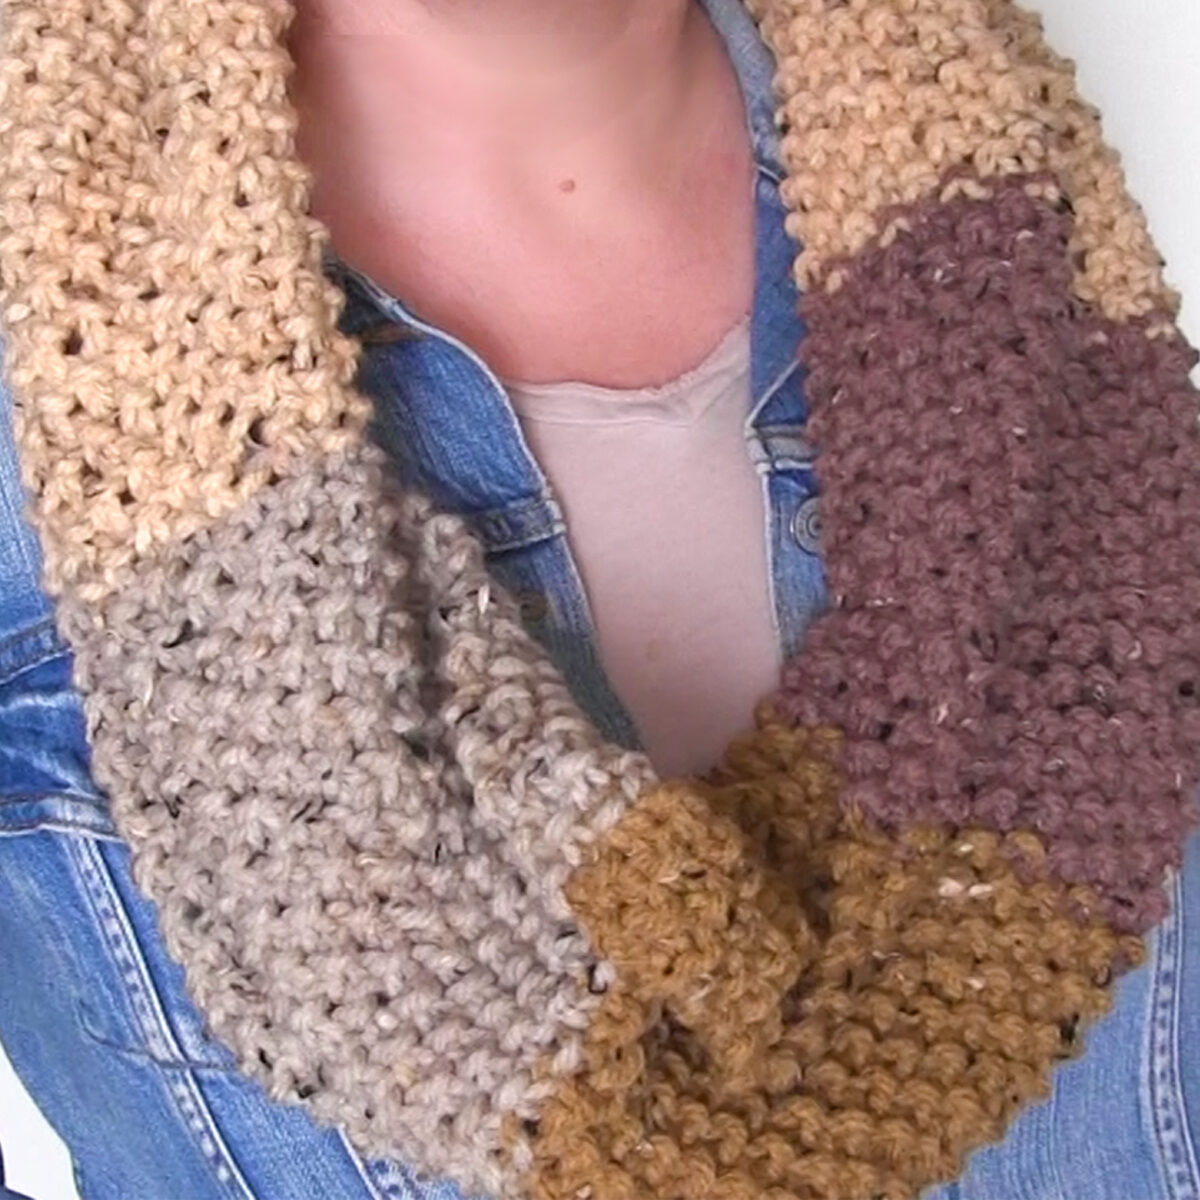 Knitted Seed Stitch Infinity Scarf in different shades of brown yarn colors worn by woman in jean jacket.